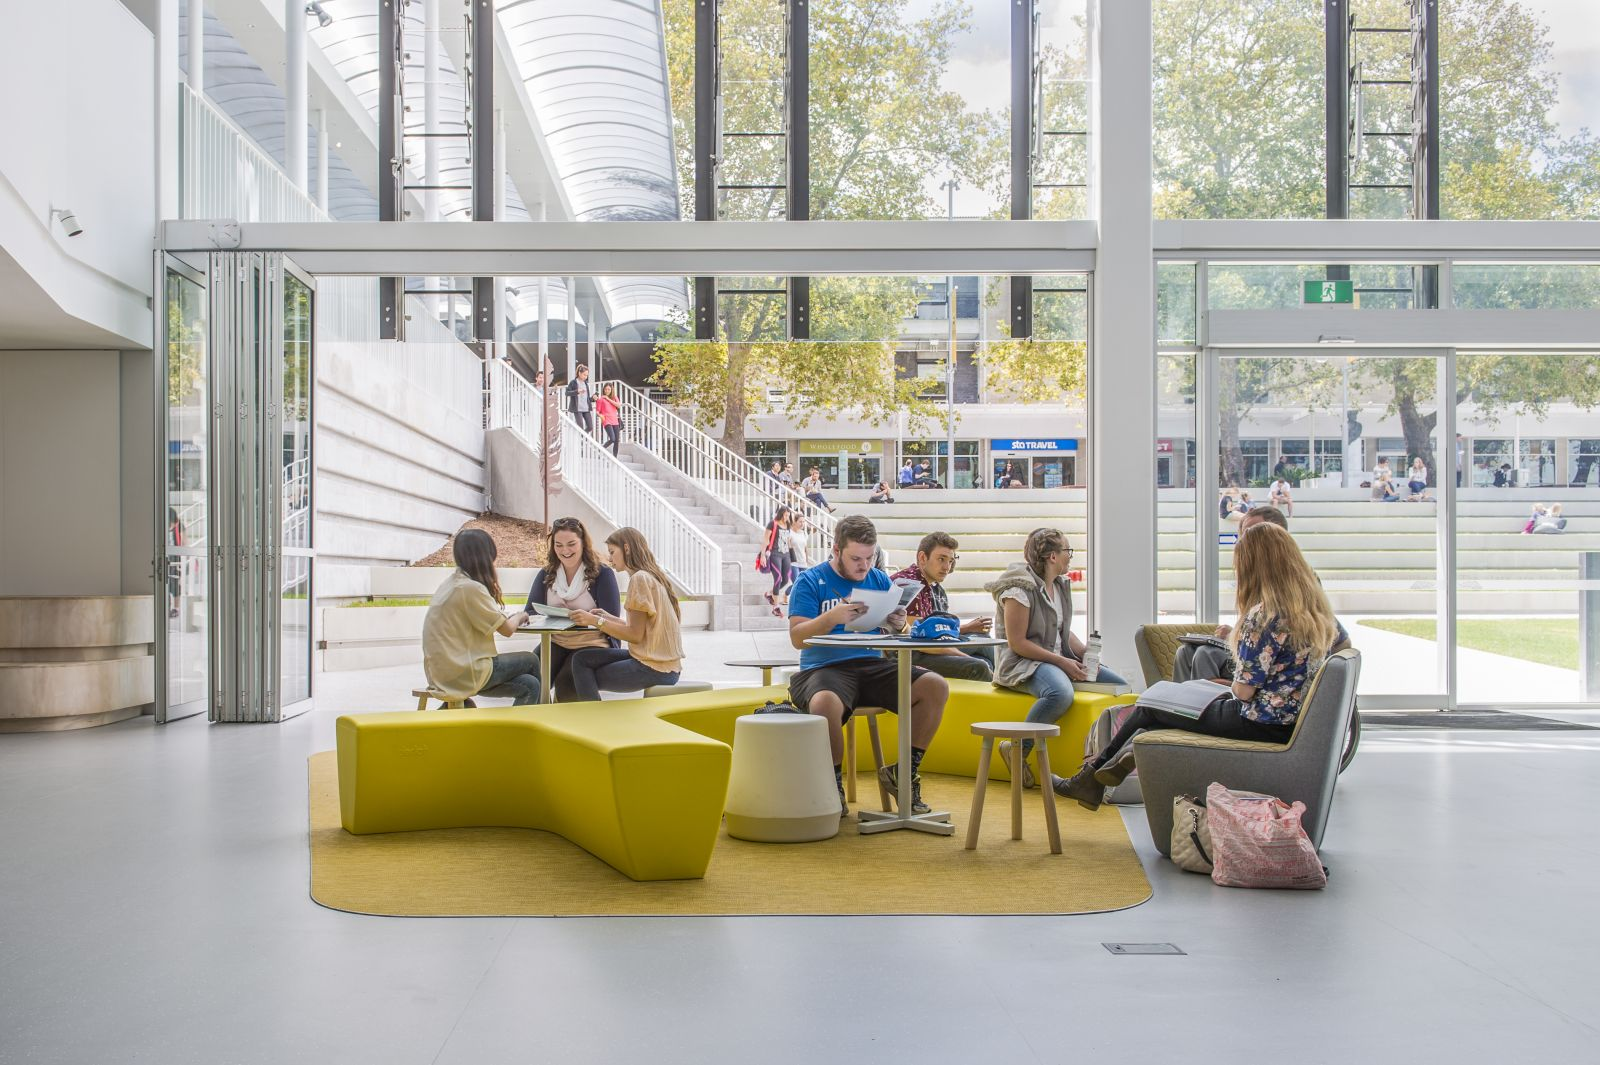 Students sitting in daylit atrium at Flinders University